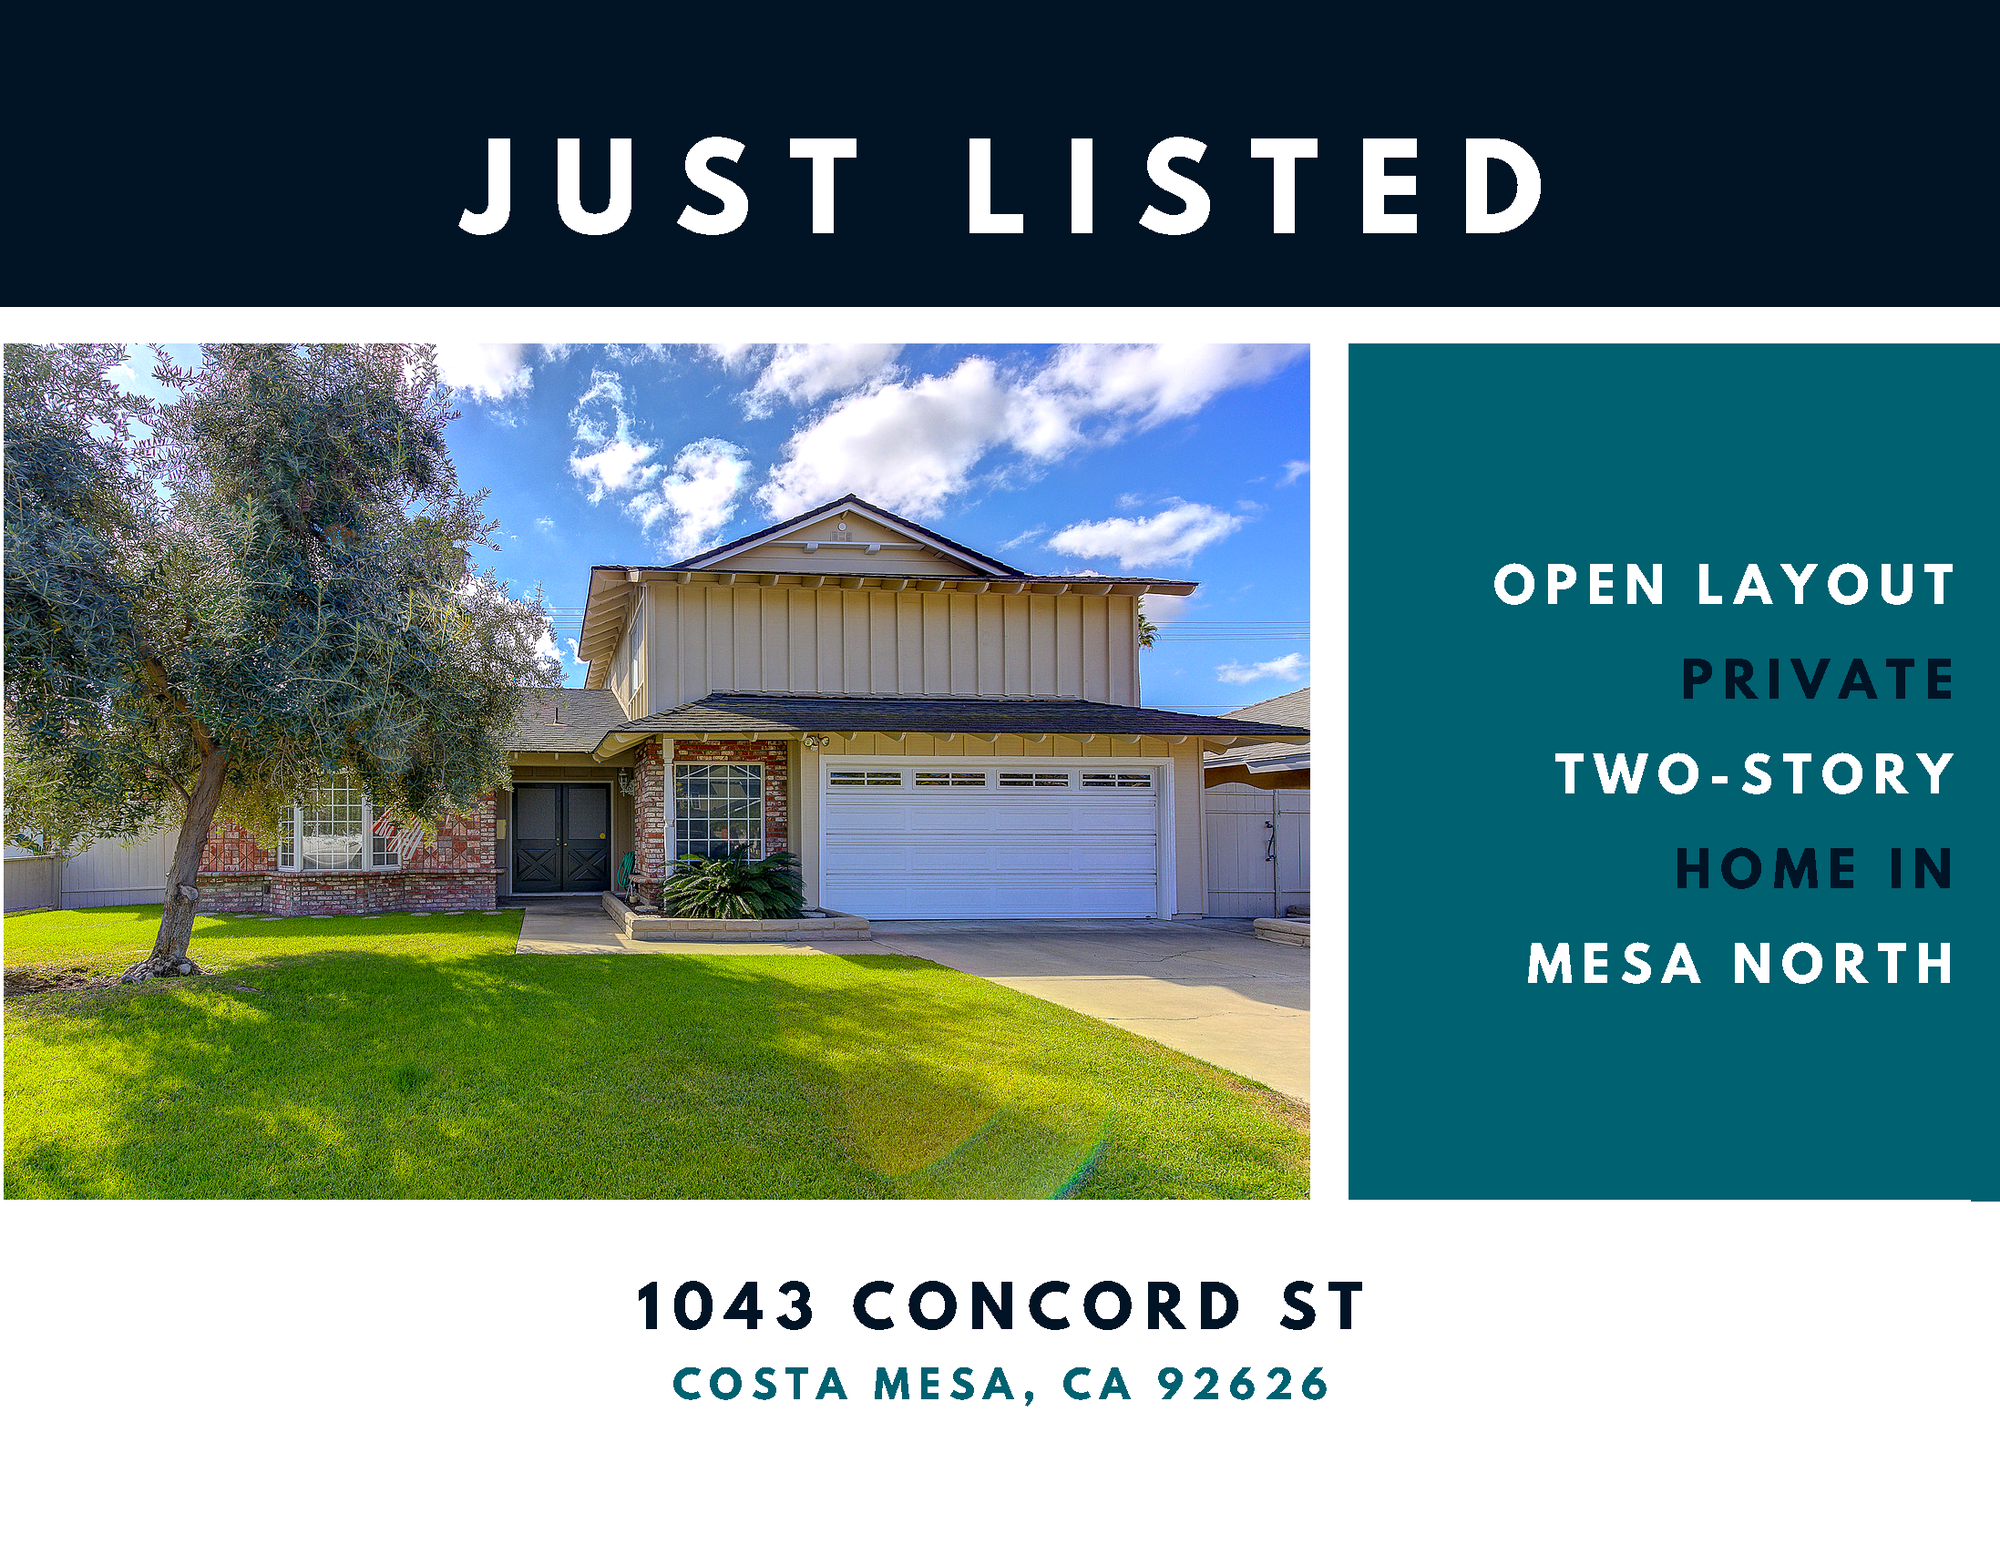 New Listing in Mesa North, Costa Mesa